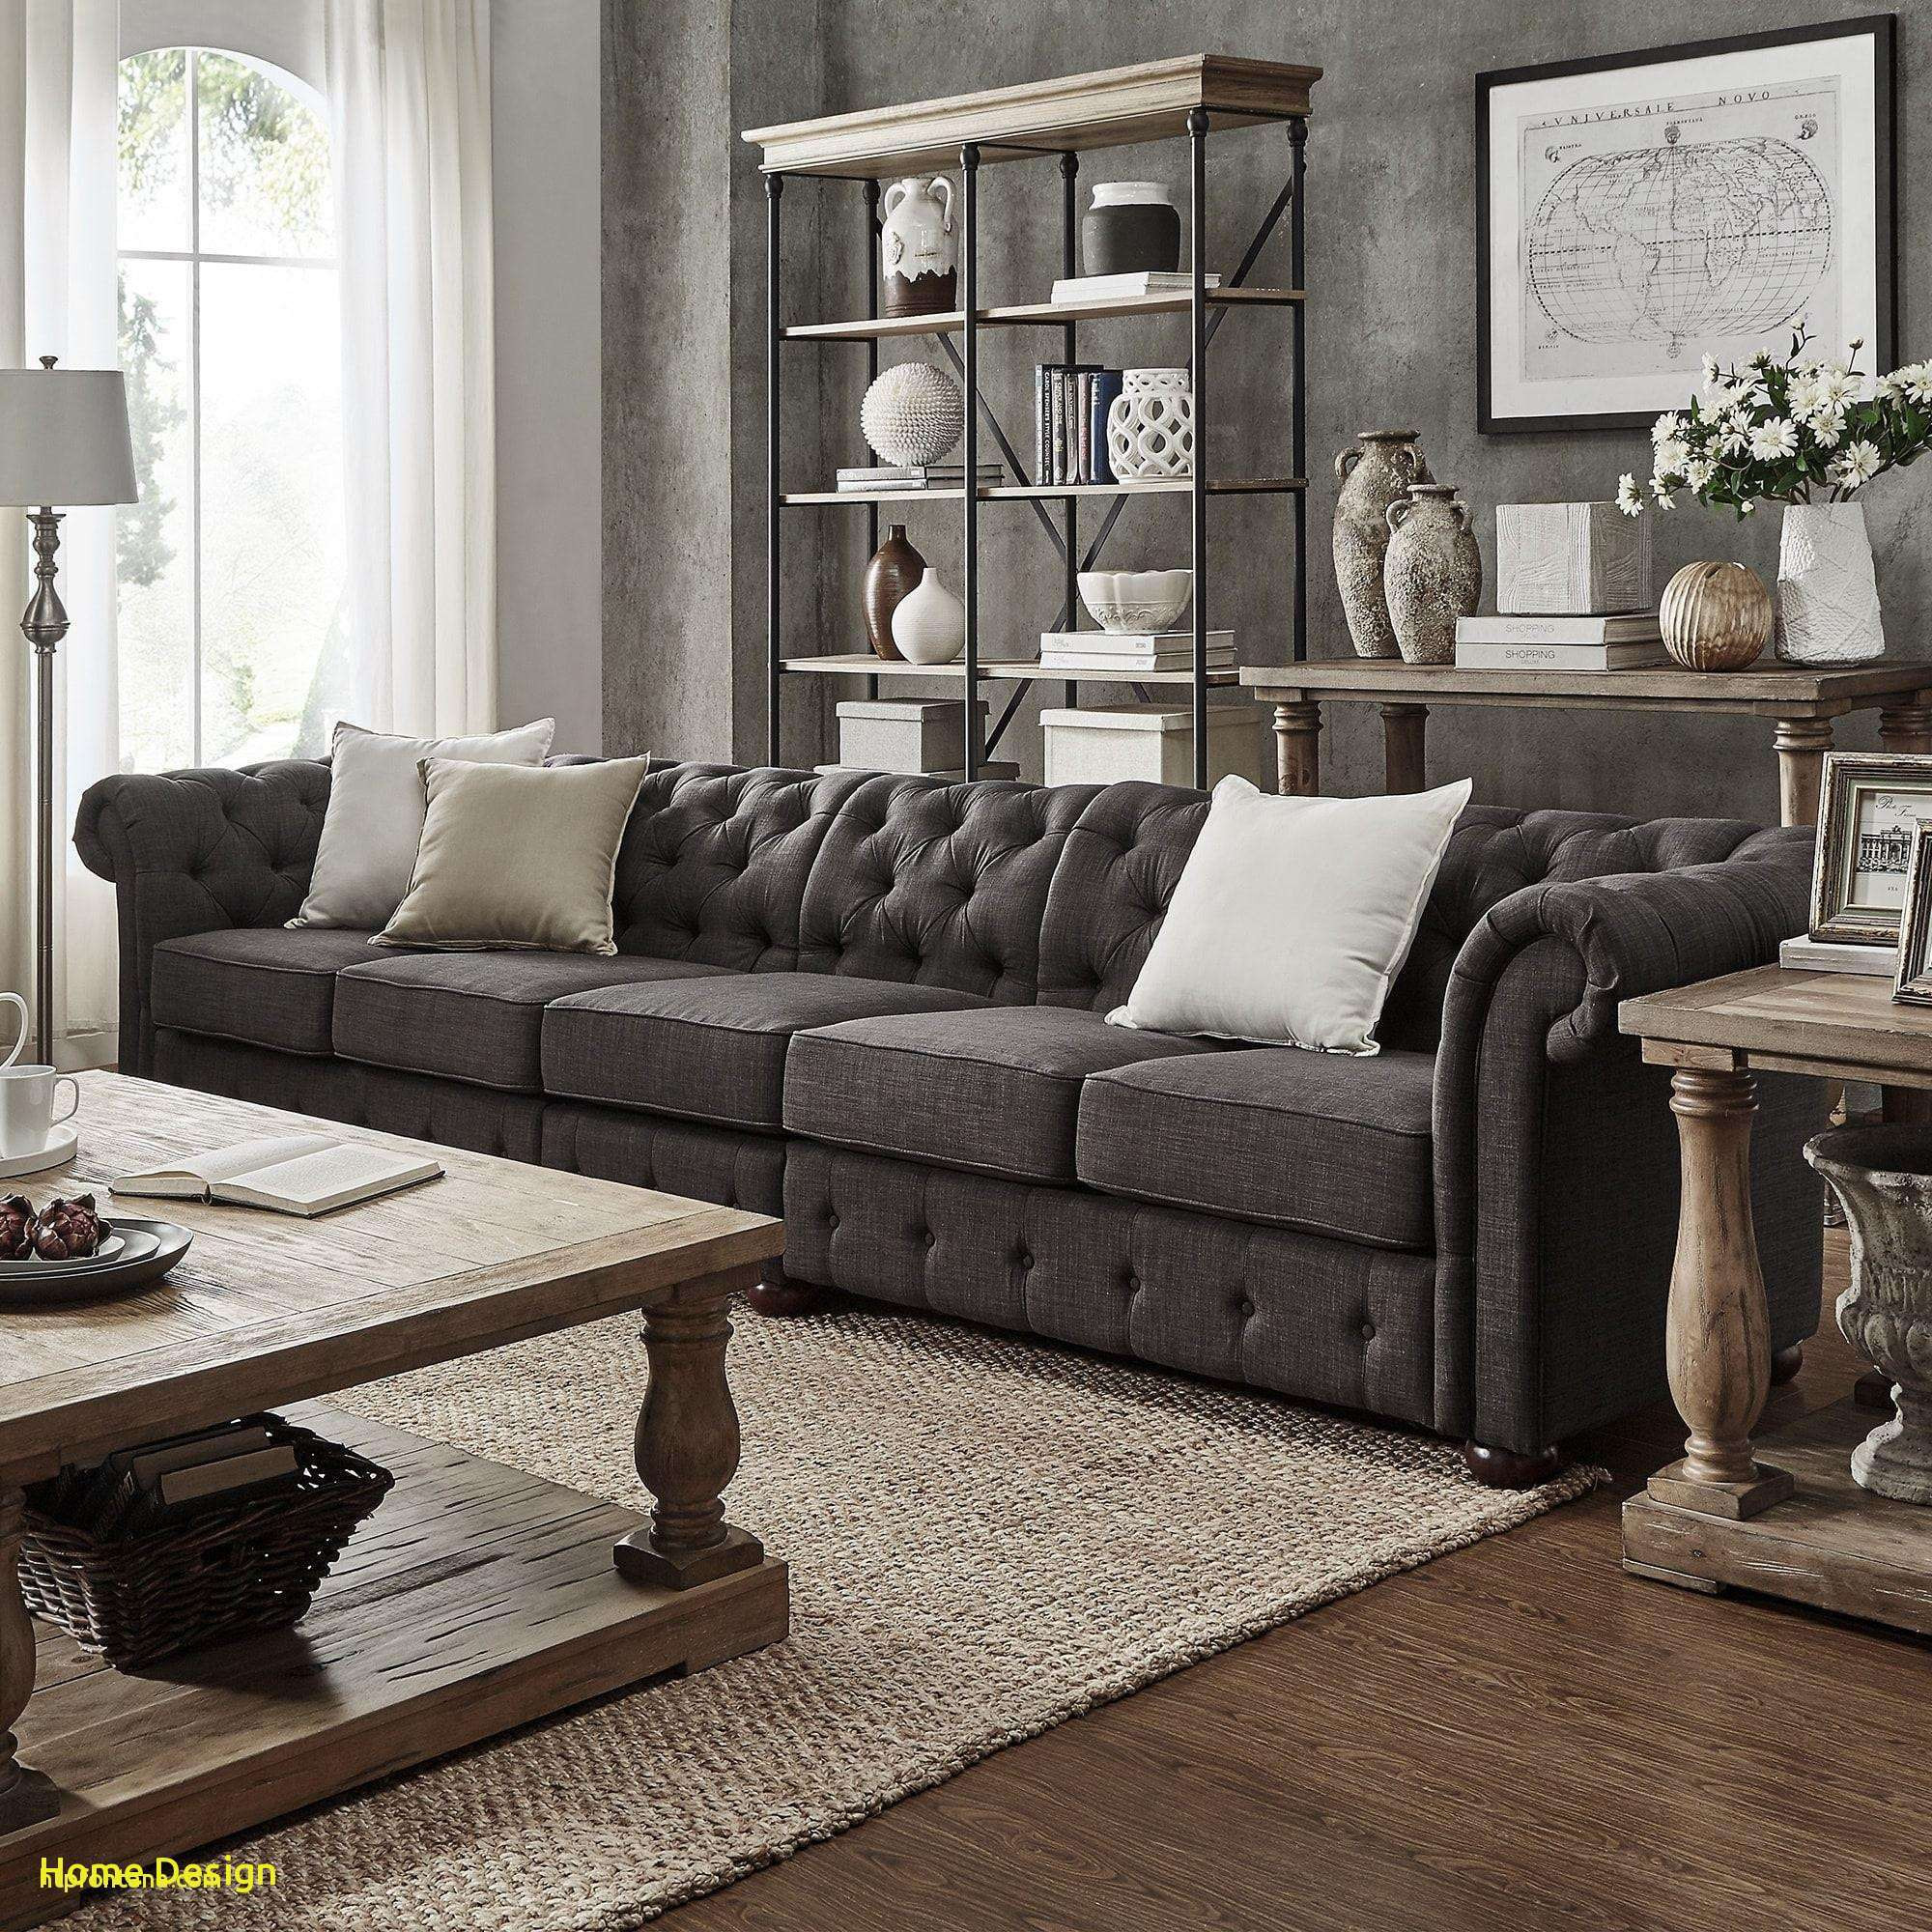 26 attractive Z Gallerie Silver Vase 2021 free download z gallerie silver vase of living room design with grey sofa best of sofa grau braun within gallery of living room design with grey sofa